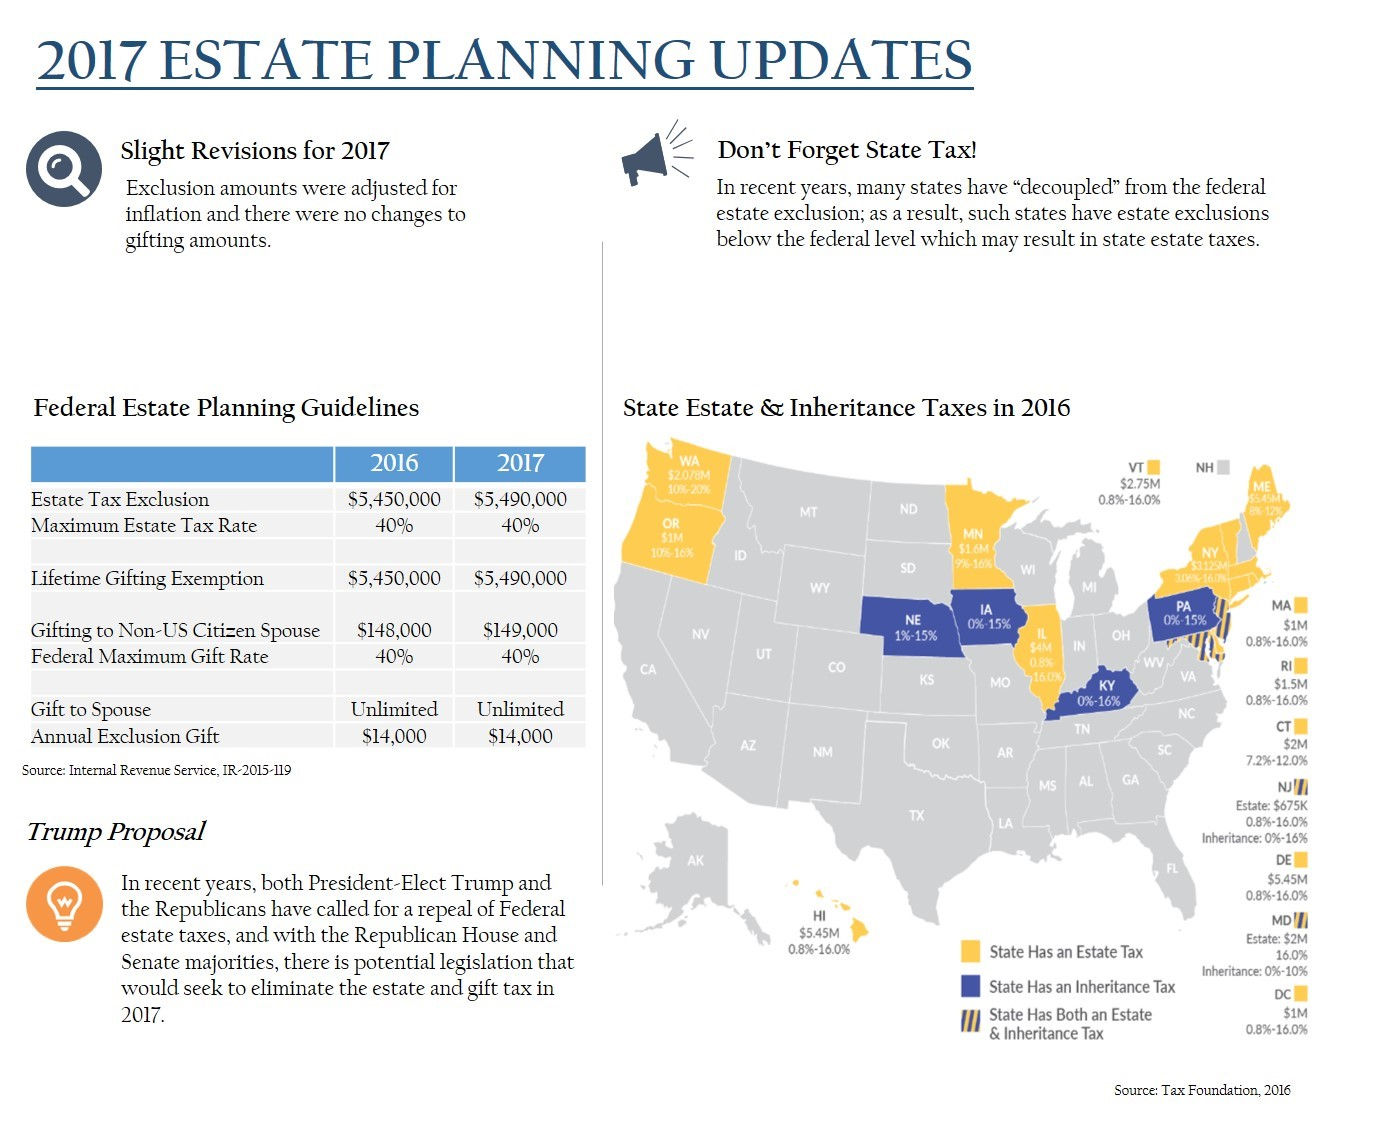 NEIRG 2017 Estate Planning Updates